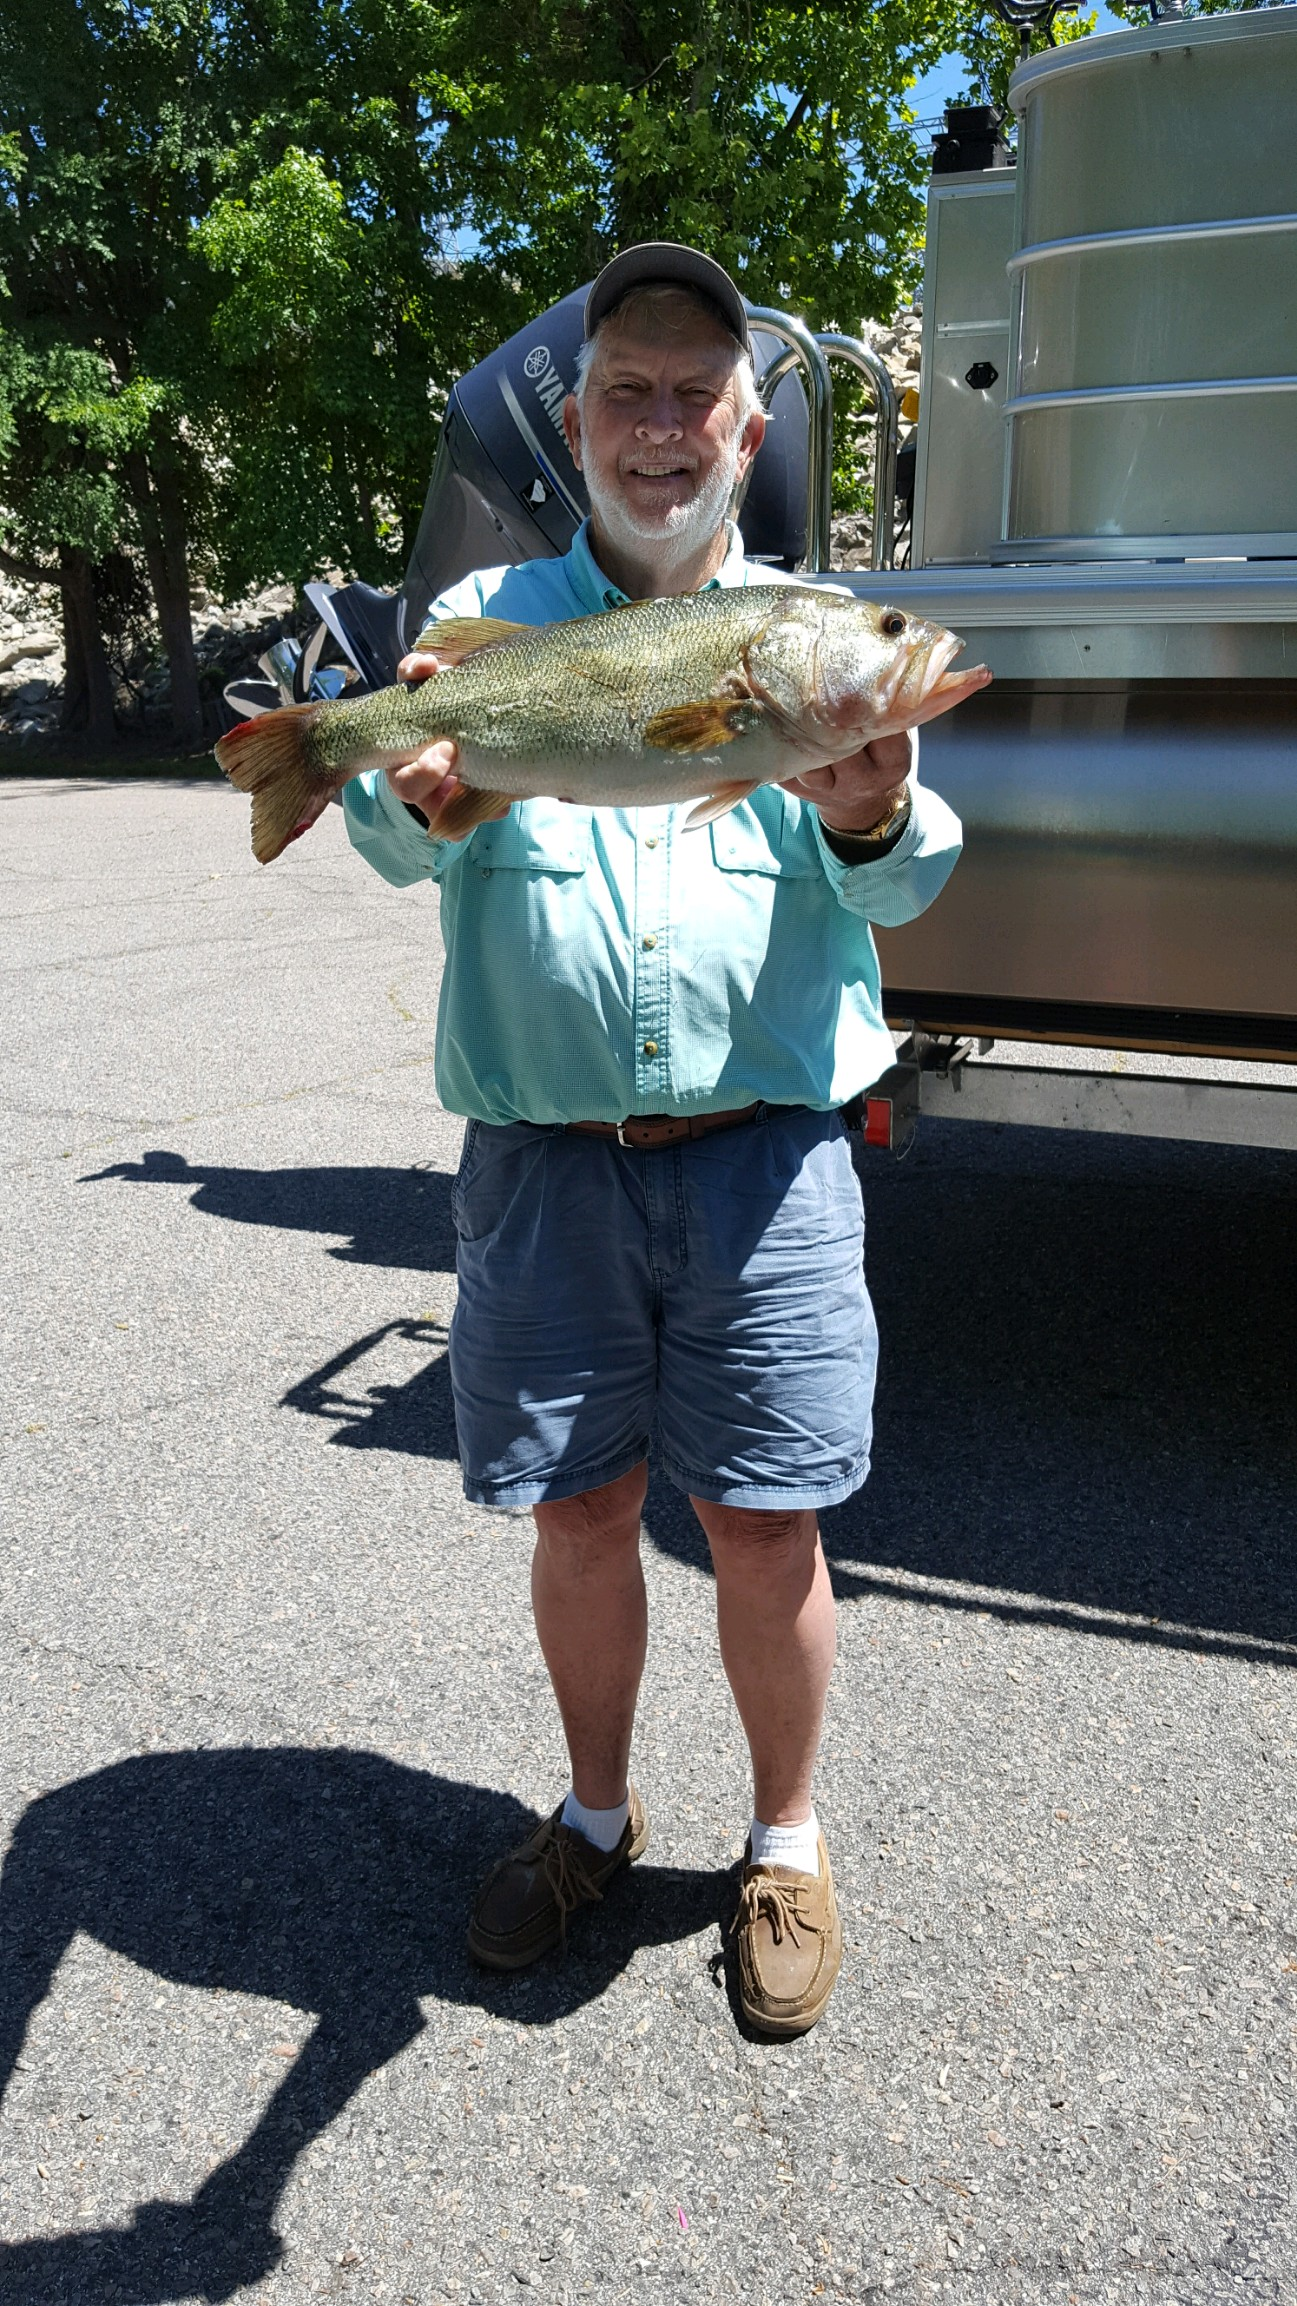 May 17, 2017 Tony Polson with his 6 lb bass.